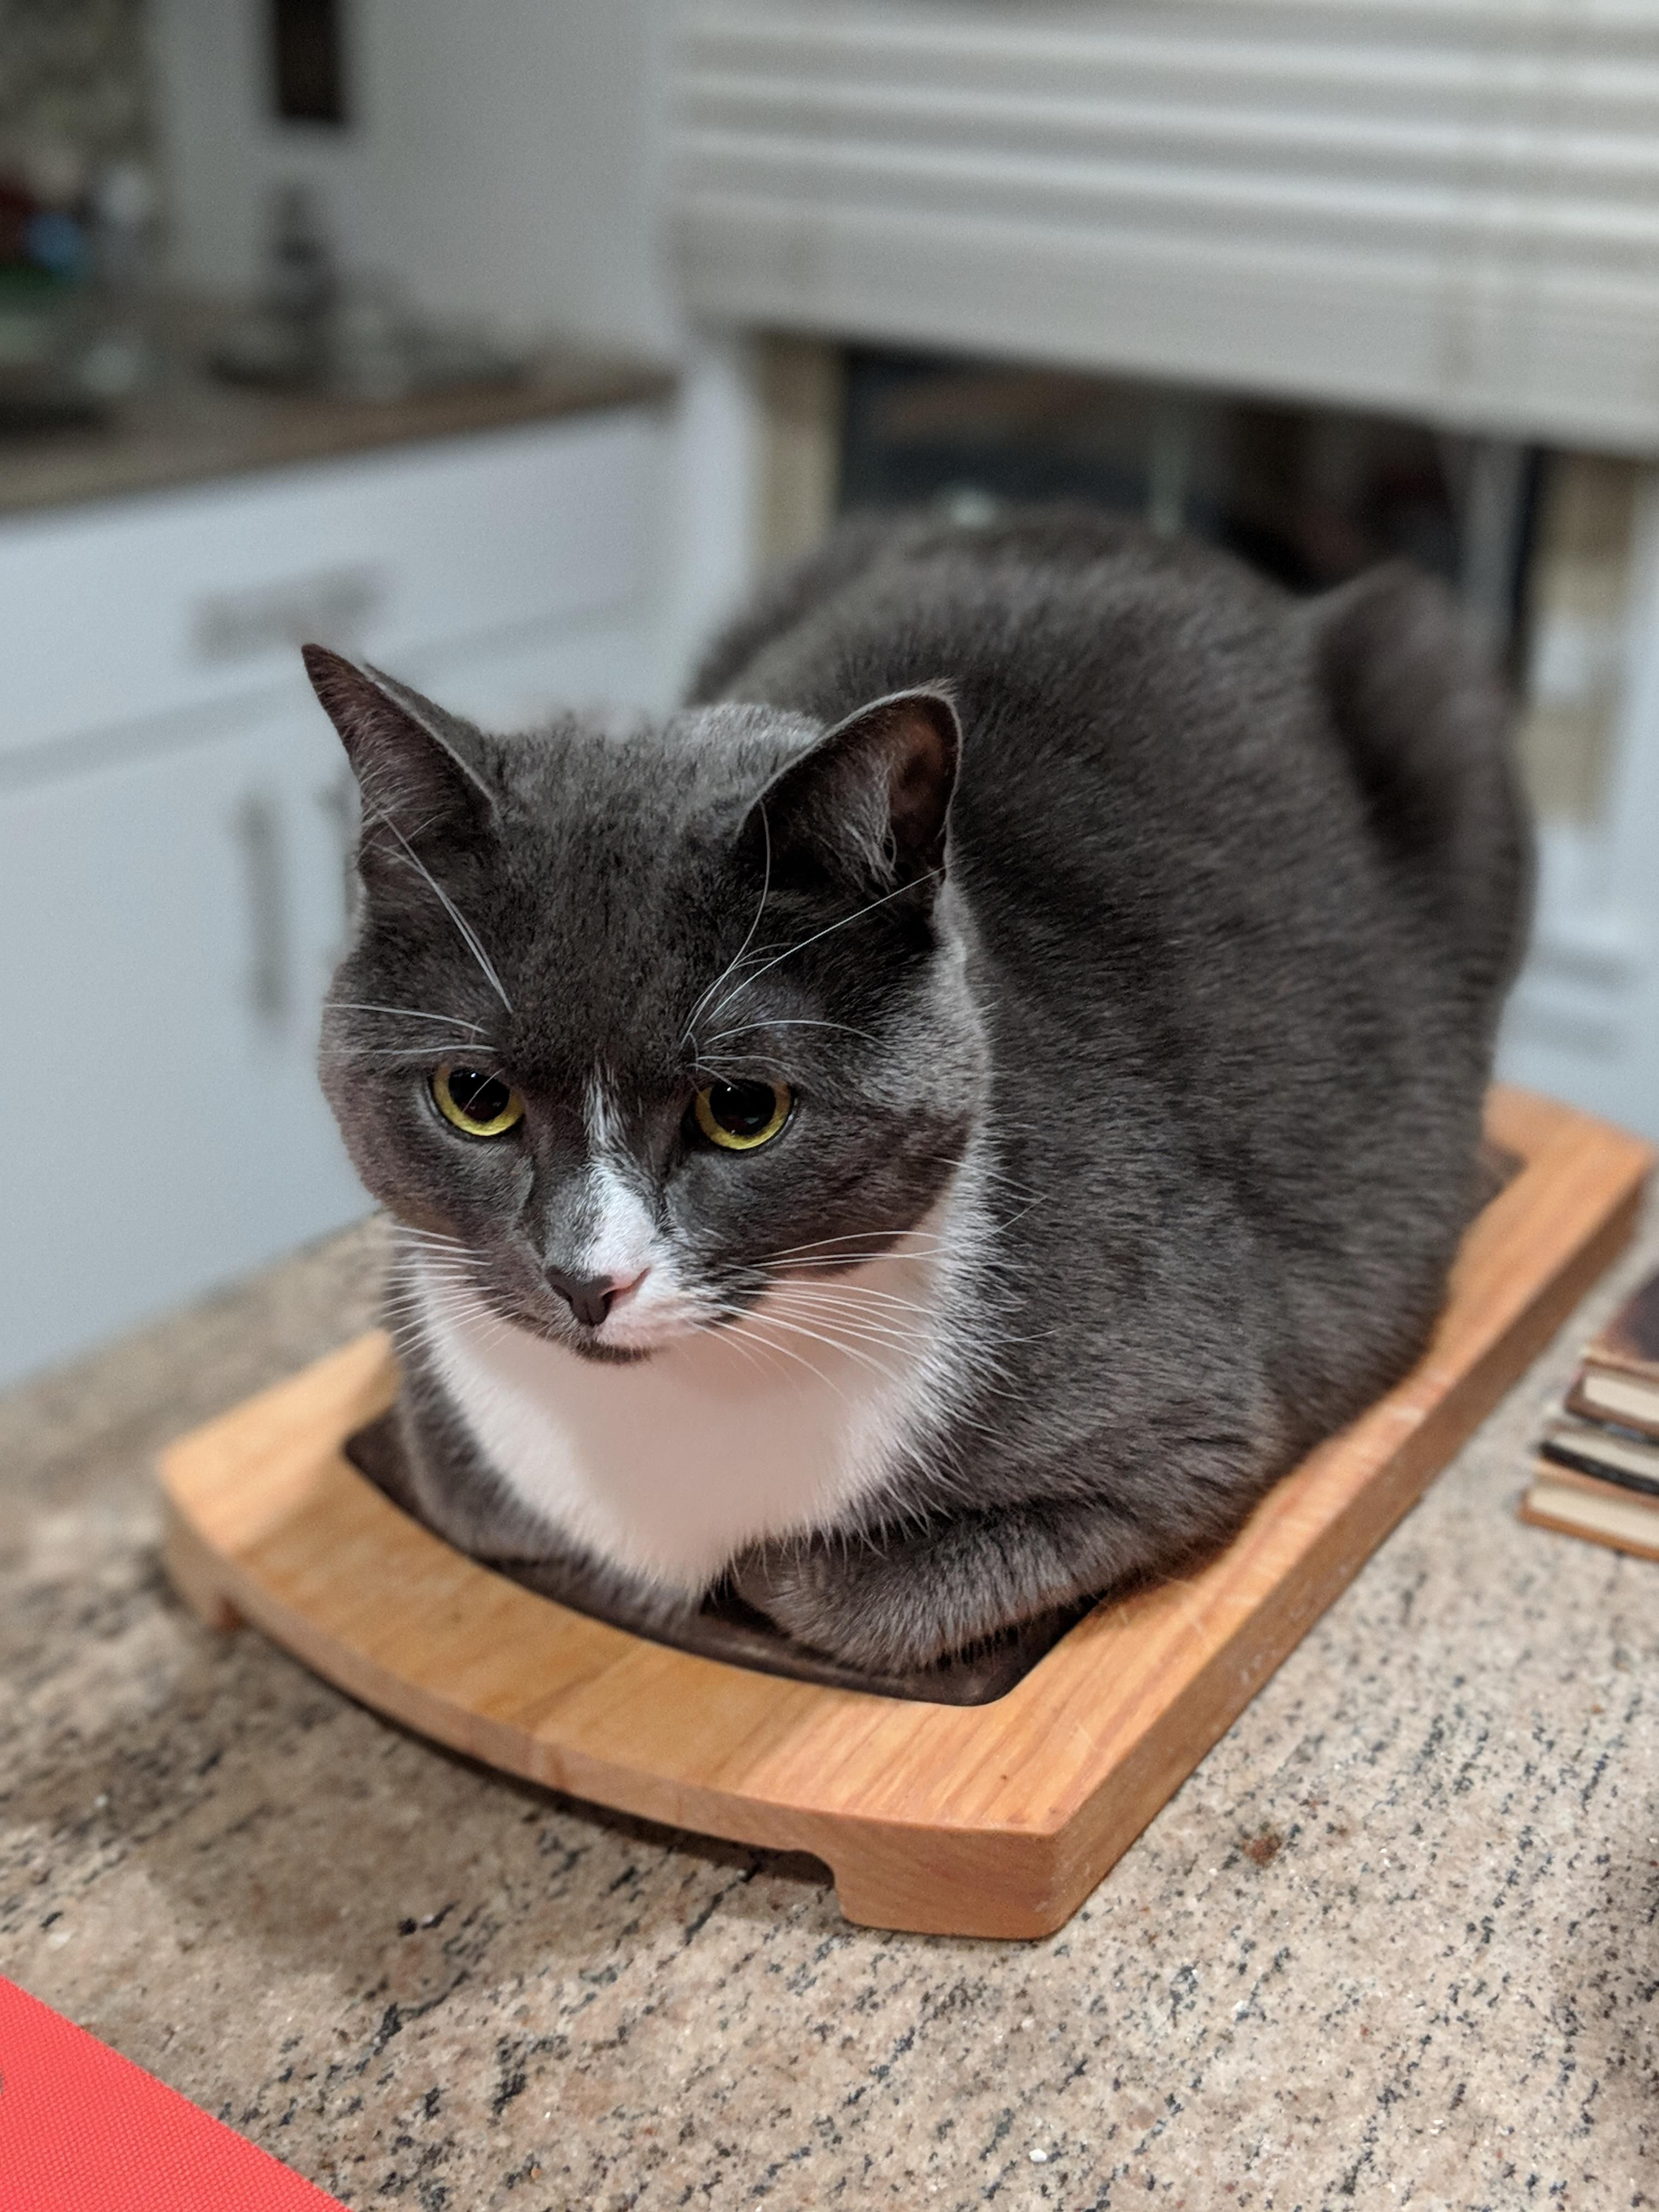 Our cat thinks he's a loaf of bread (With images) Cats